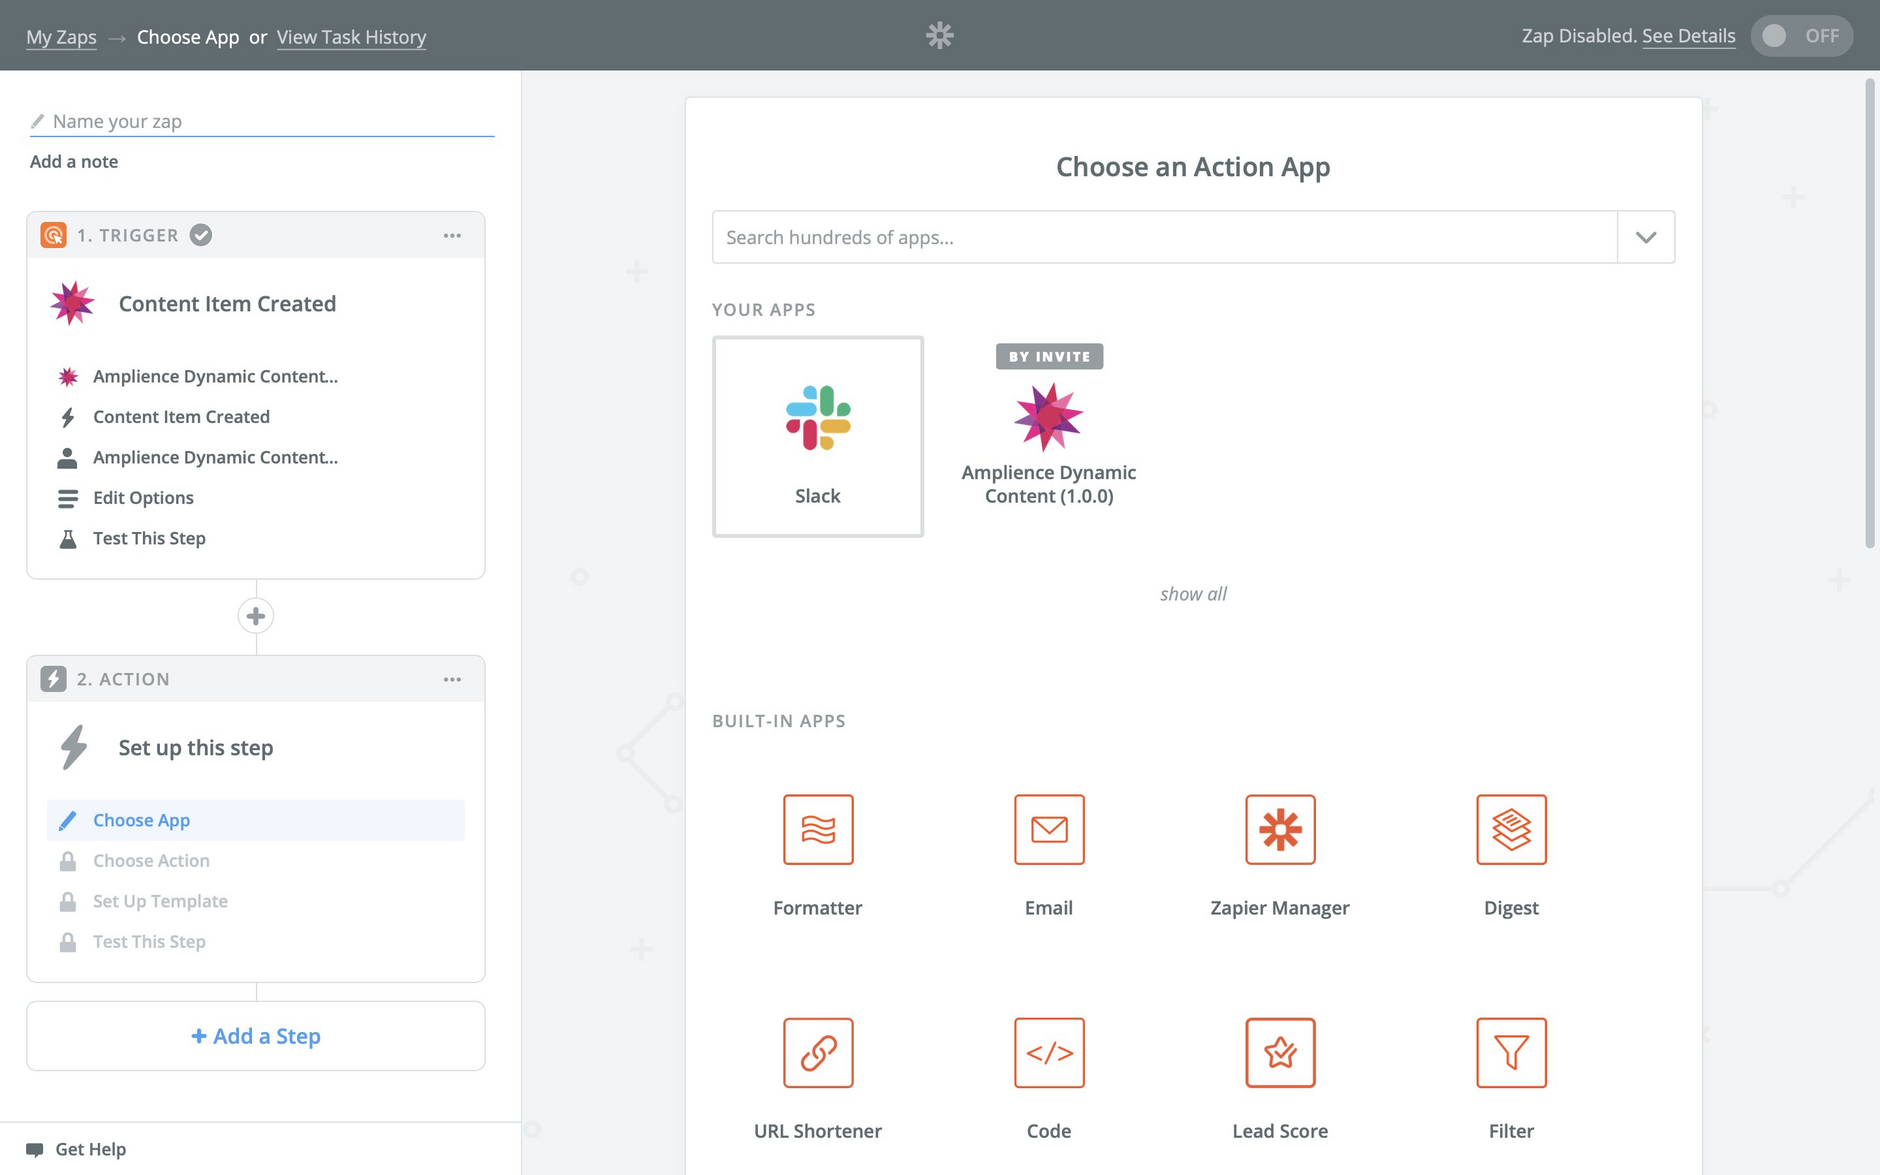 Choose the action app. In this example we'll choose Slack